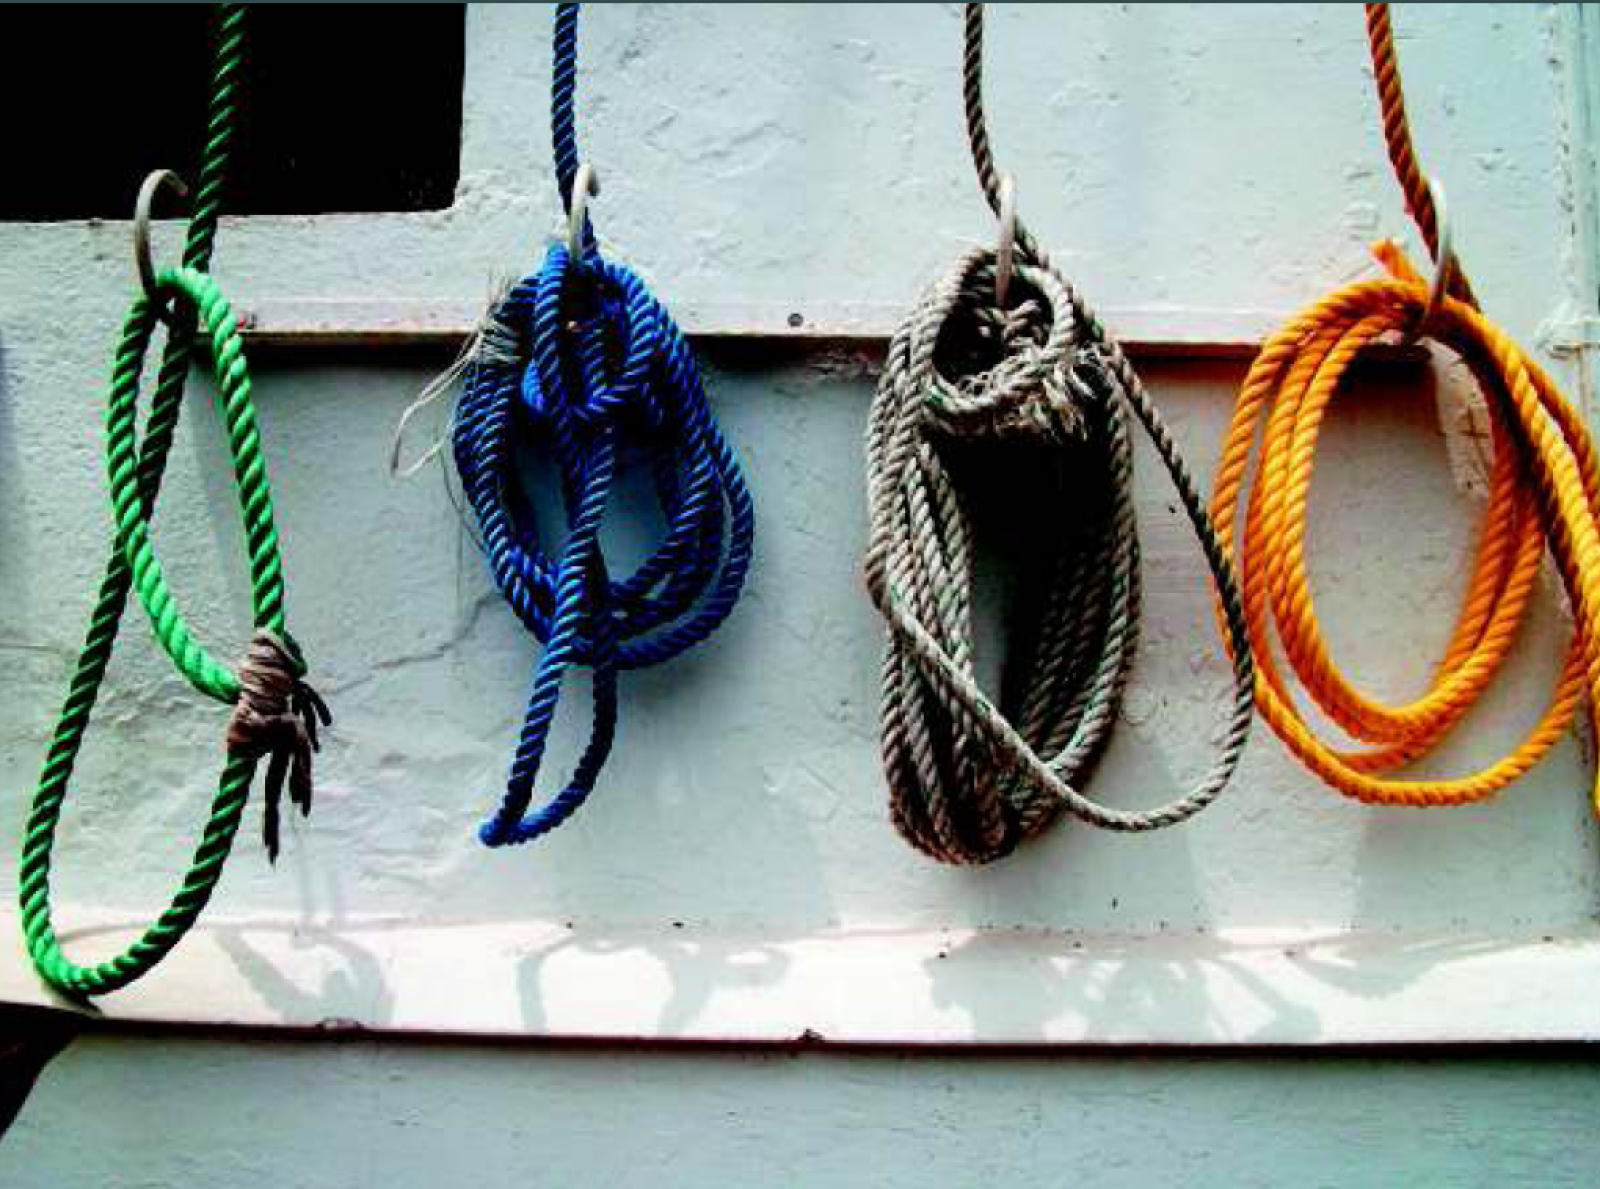 """""""By touch, all ropes feel similar, but I got interested to take this picture when I was told about the vibrant colour of the ropes. It helped me recall memories when I had sight."""" - Joseph (late blind) 2010"""